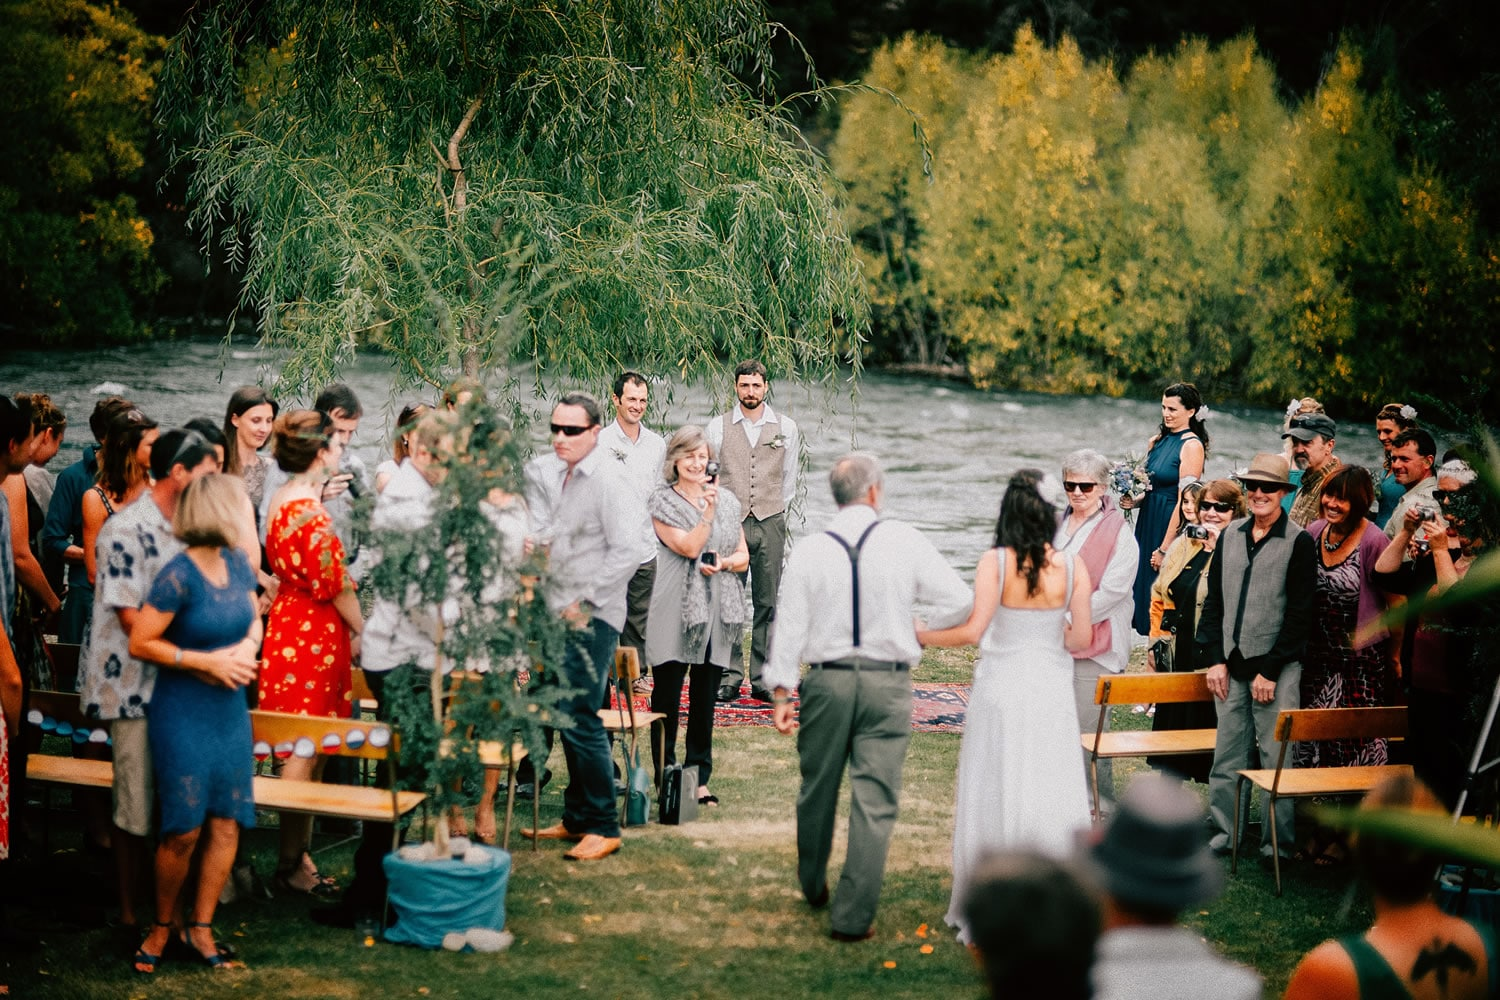 The Bride walking up the aisle at an outdoor wedding at The River House Wanaka